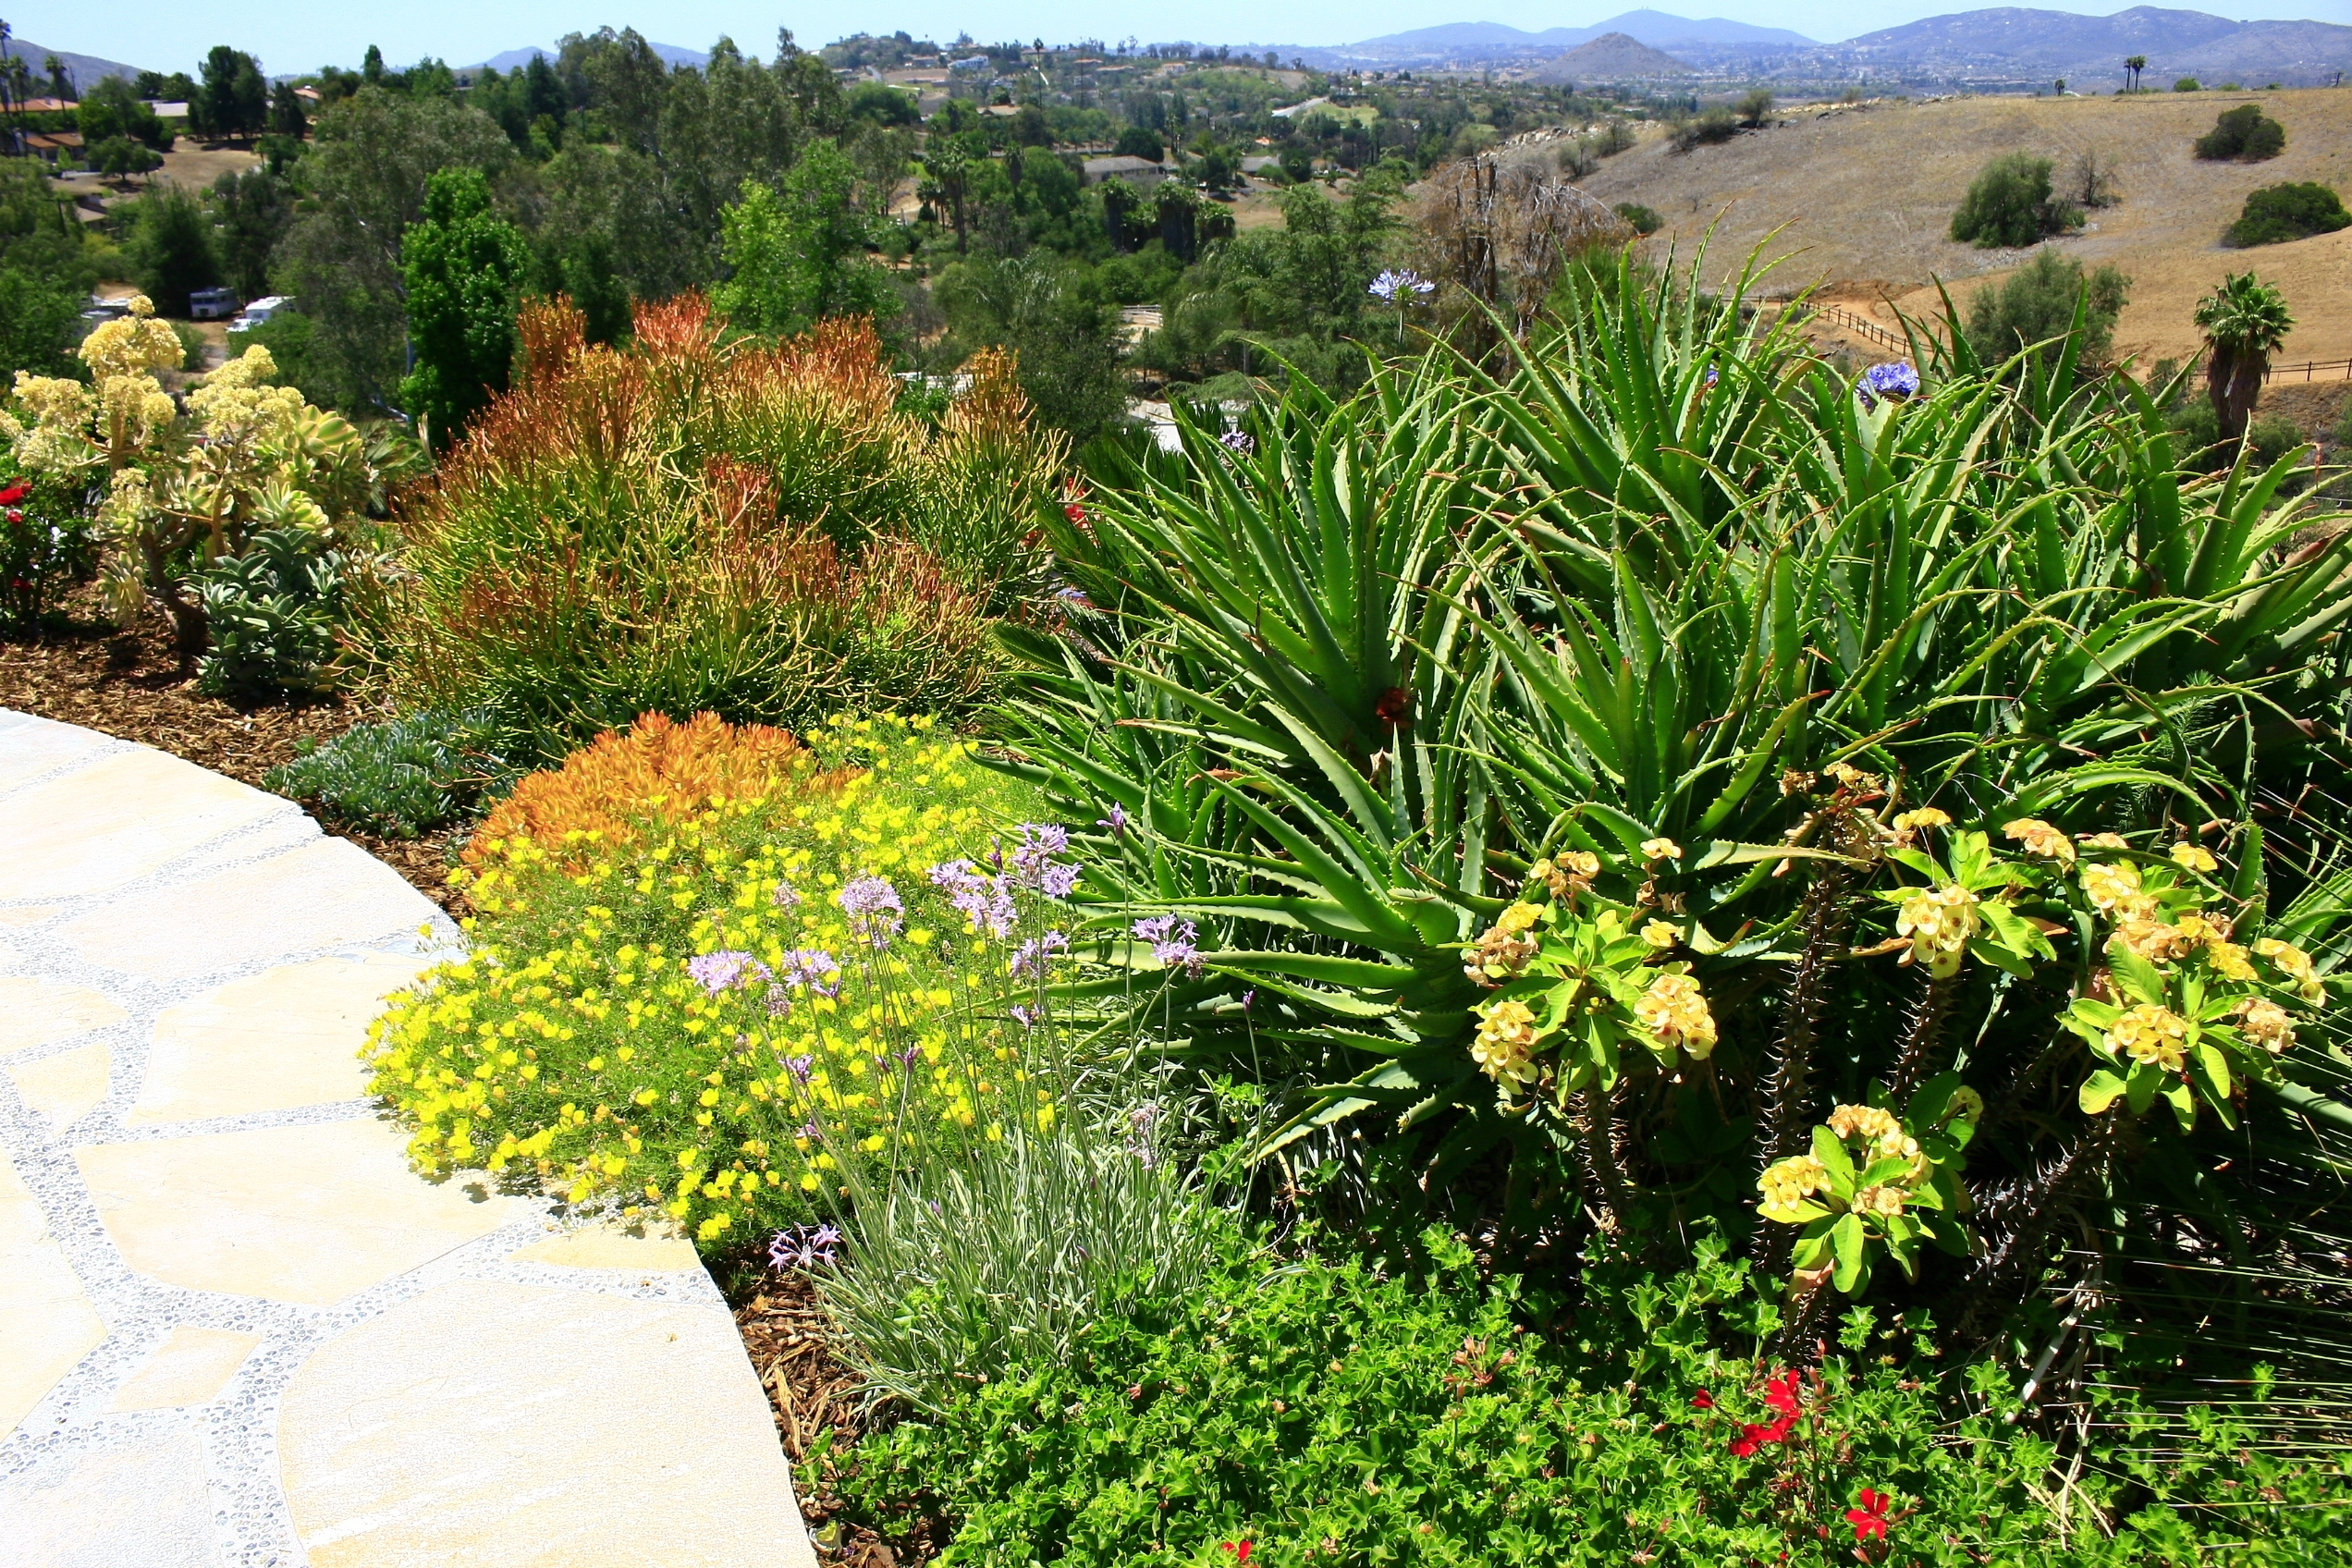 Image of: Landscape Design San Diego Ca Landscaping San Diego Ca Ideas Pertaining To Landscaping With Succulents Landscaping With Succulents Plant Ideas